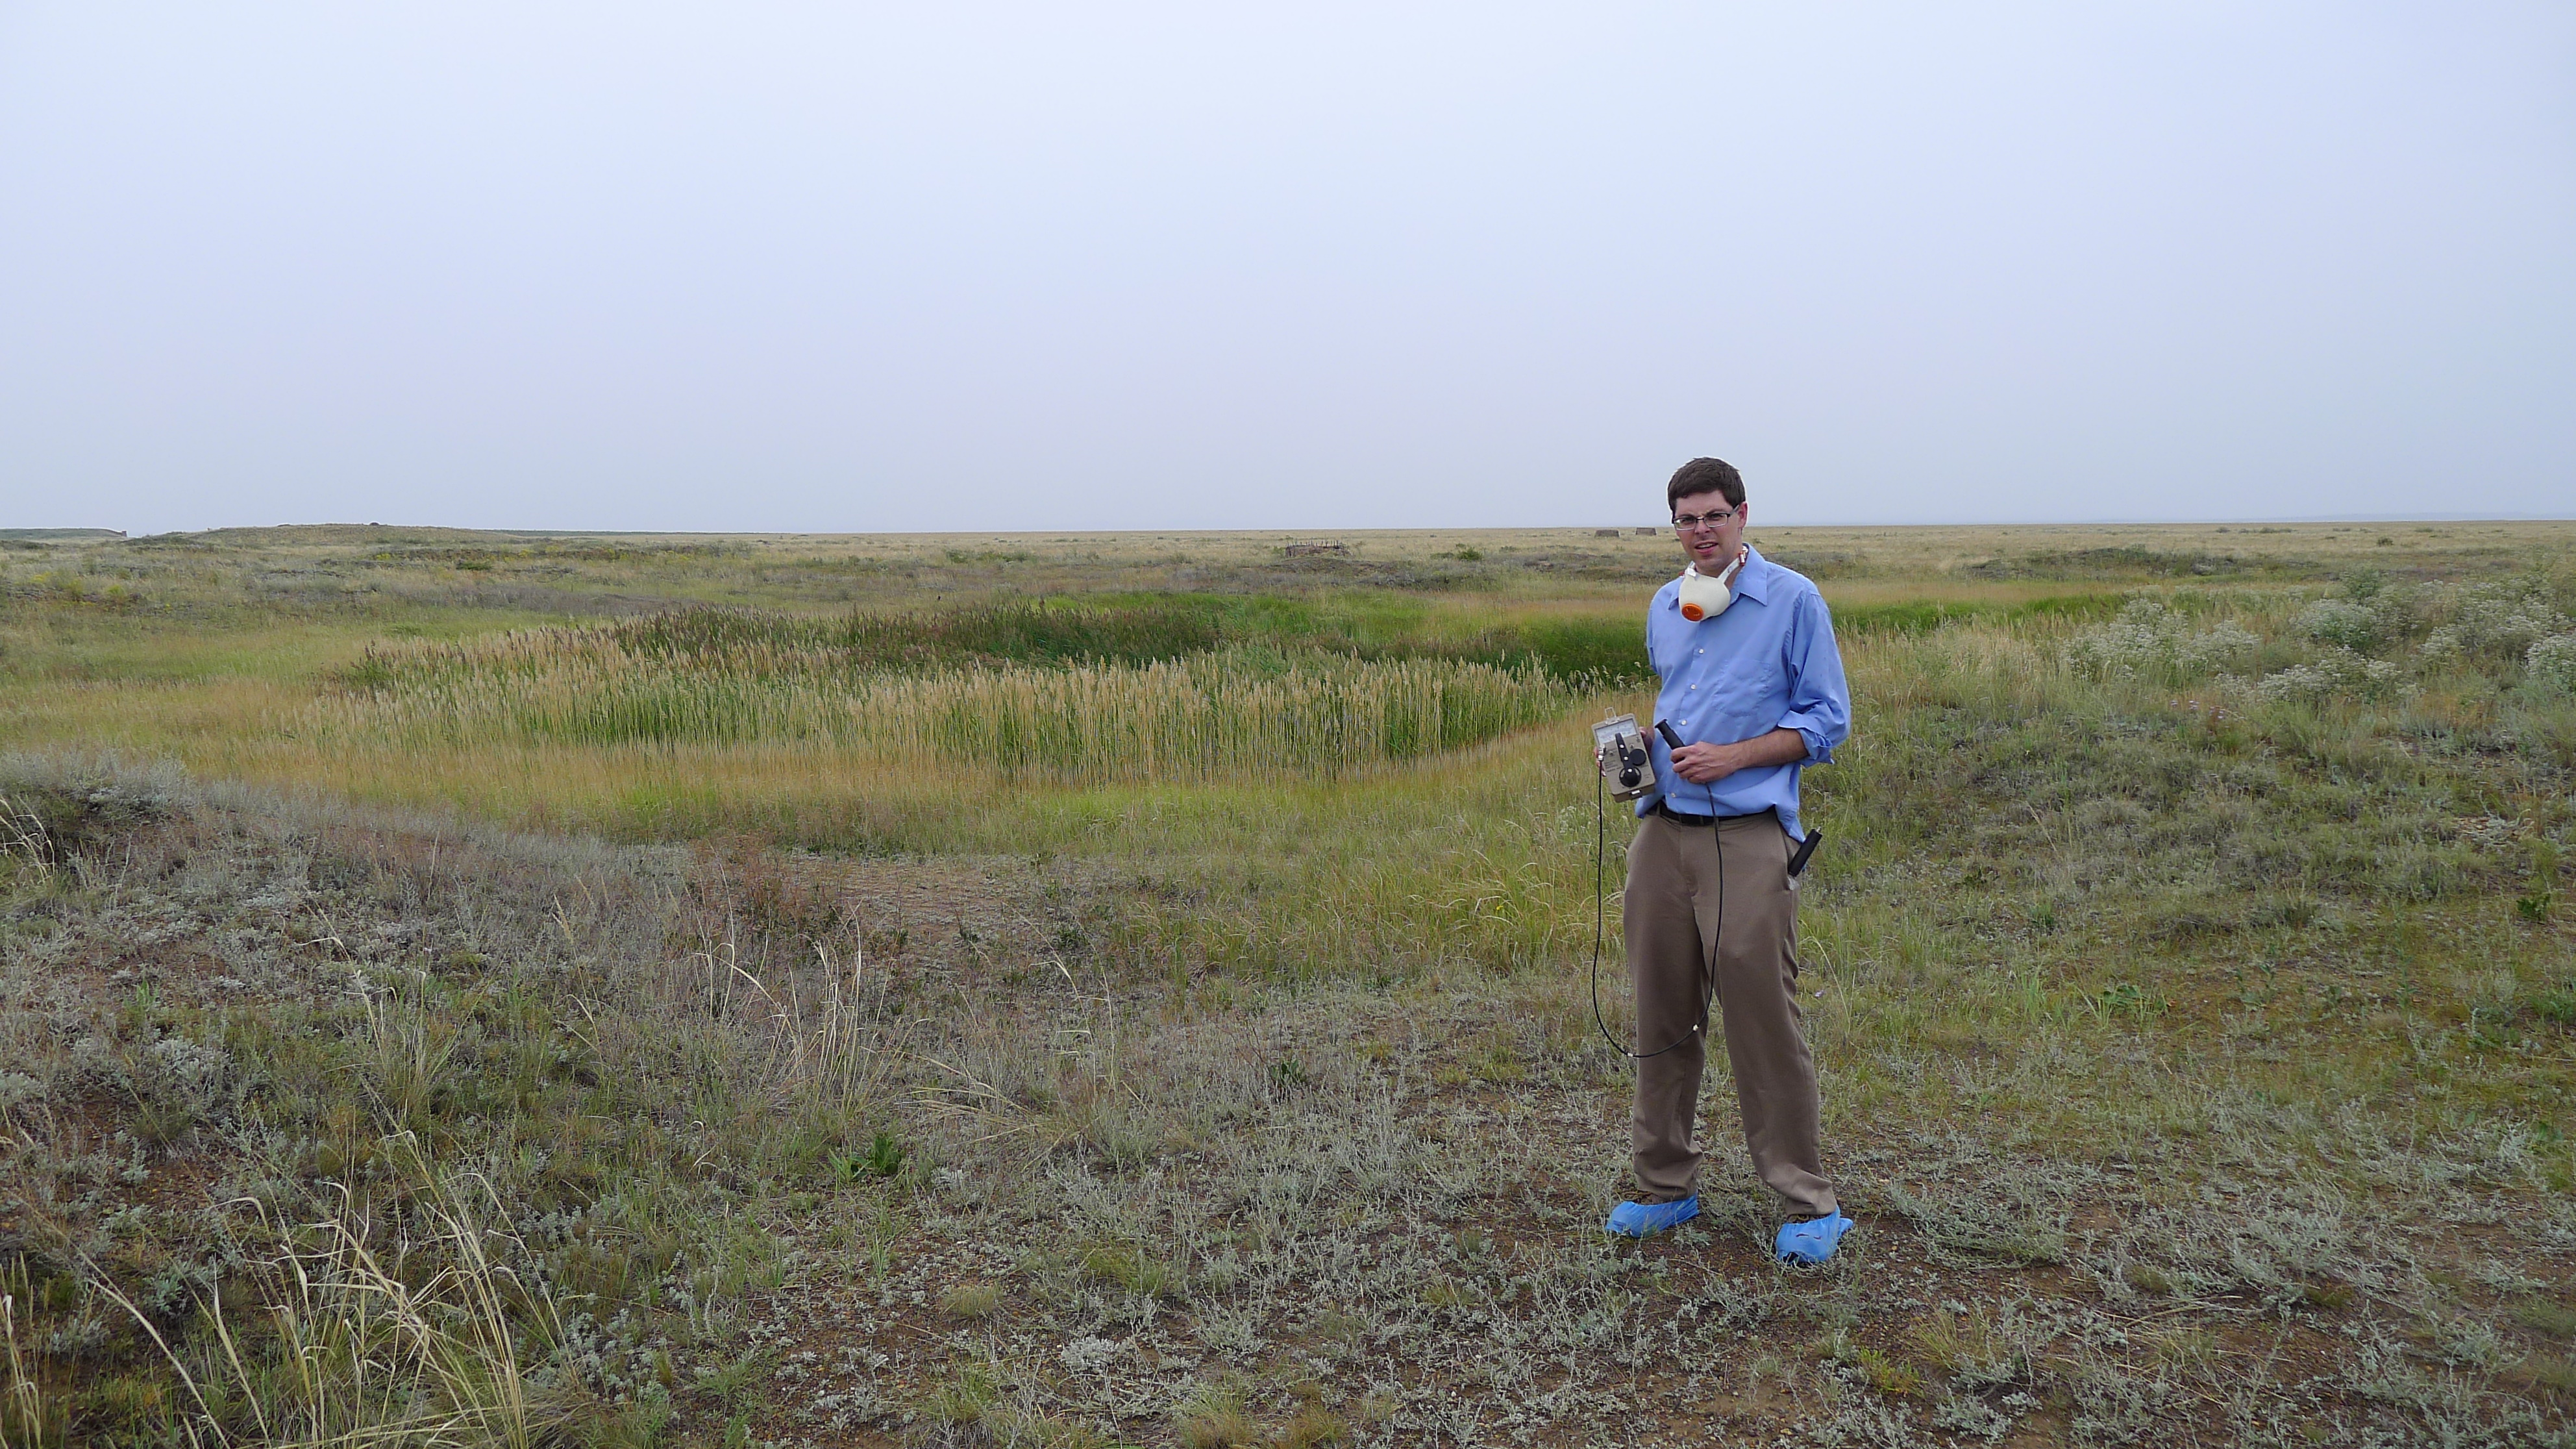 Semipalatinsk Polygon Kurchatov & the Polygon, Visit to the Semipalatinsk Nuclear Test Site   Special Nuclear ...